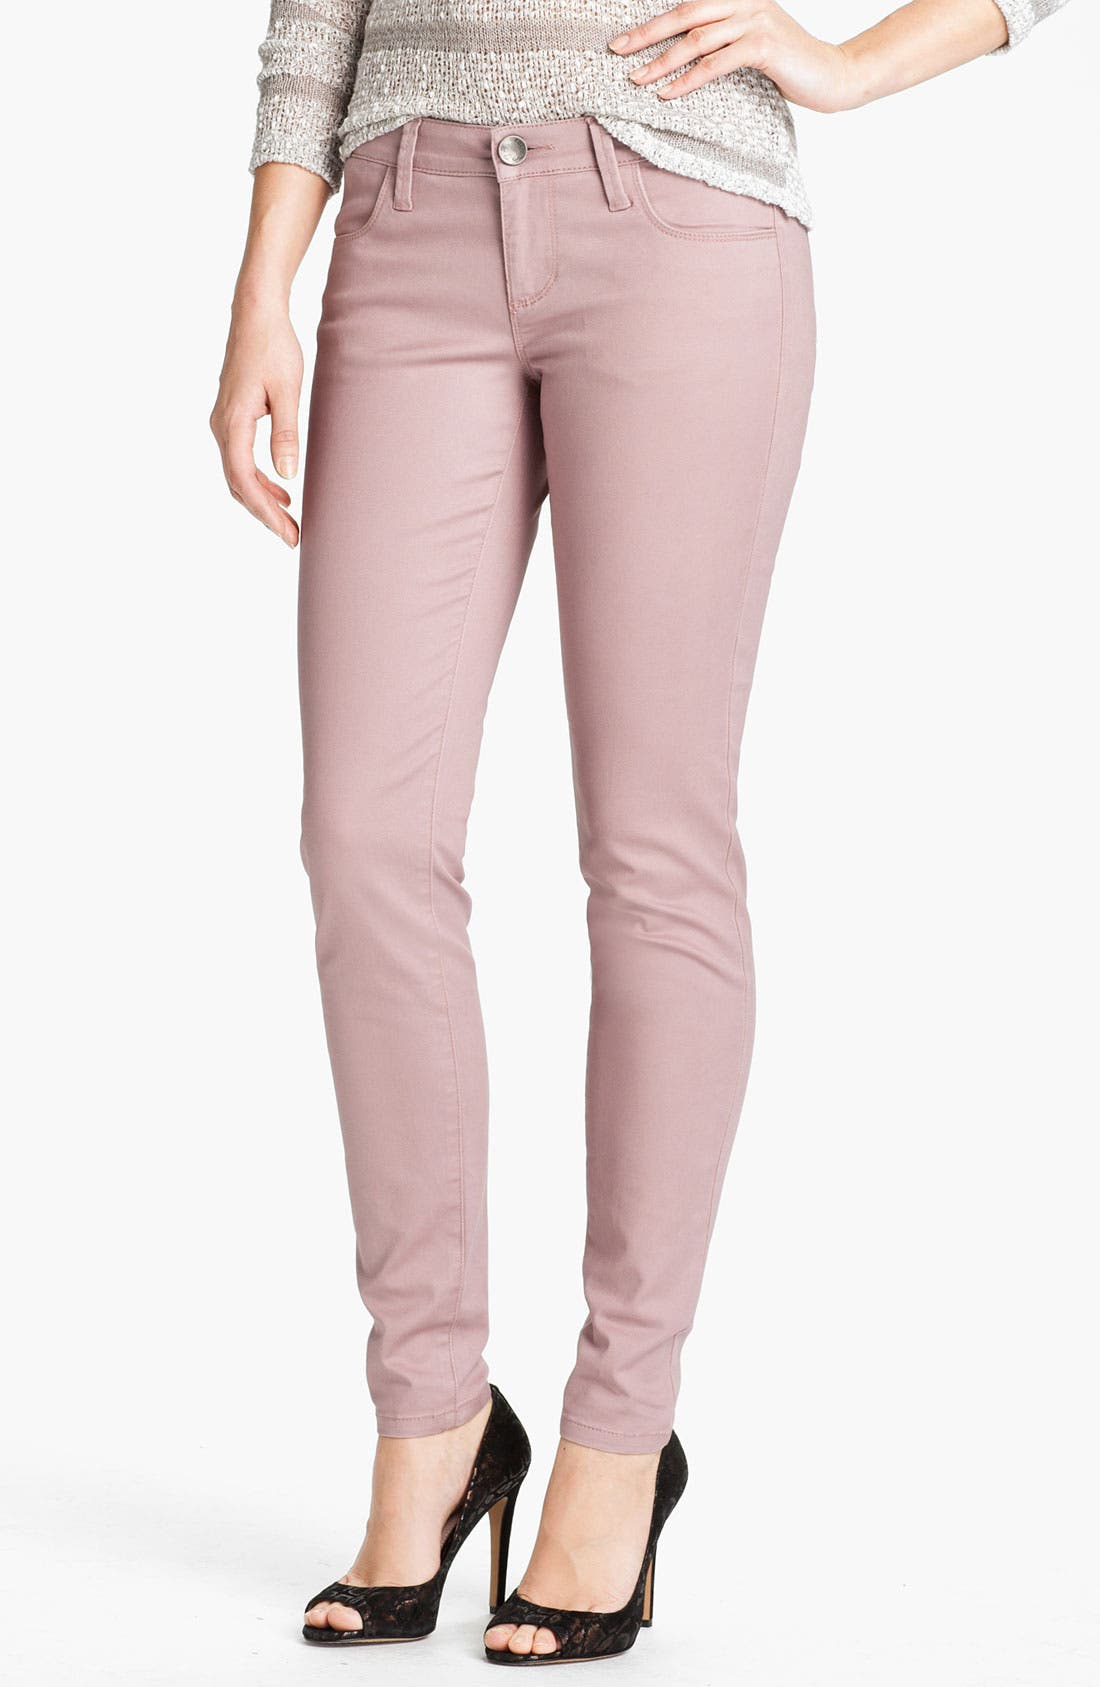 Alternate Image 1 Selected - KUT from the Kloth 'Jennifer' Skinny Stretch Jeans (Rose) (Online Exclusive)